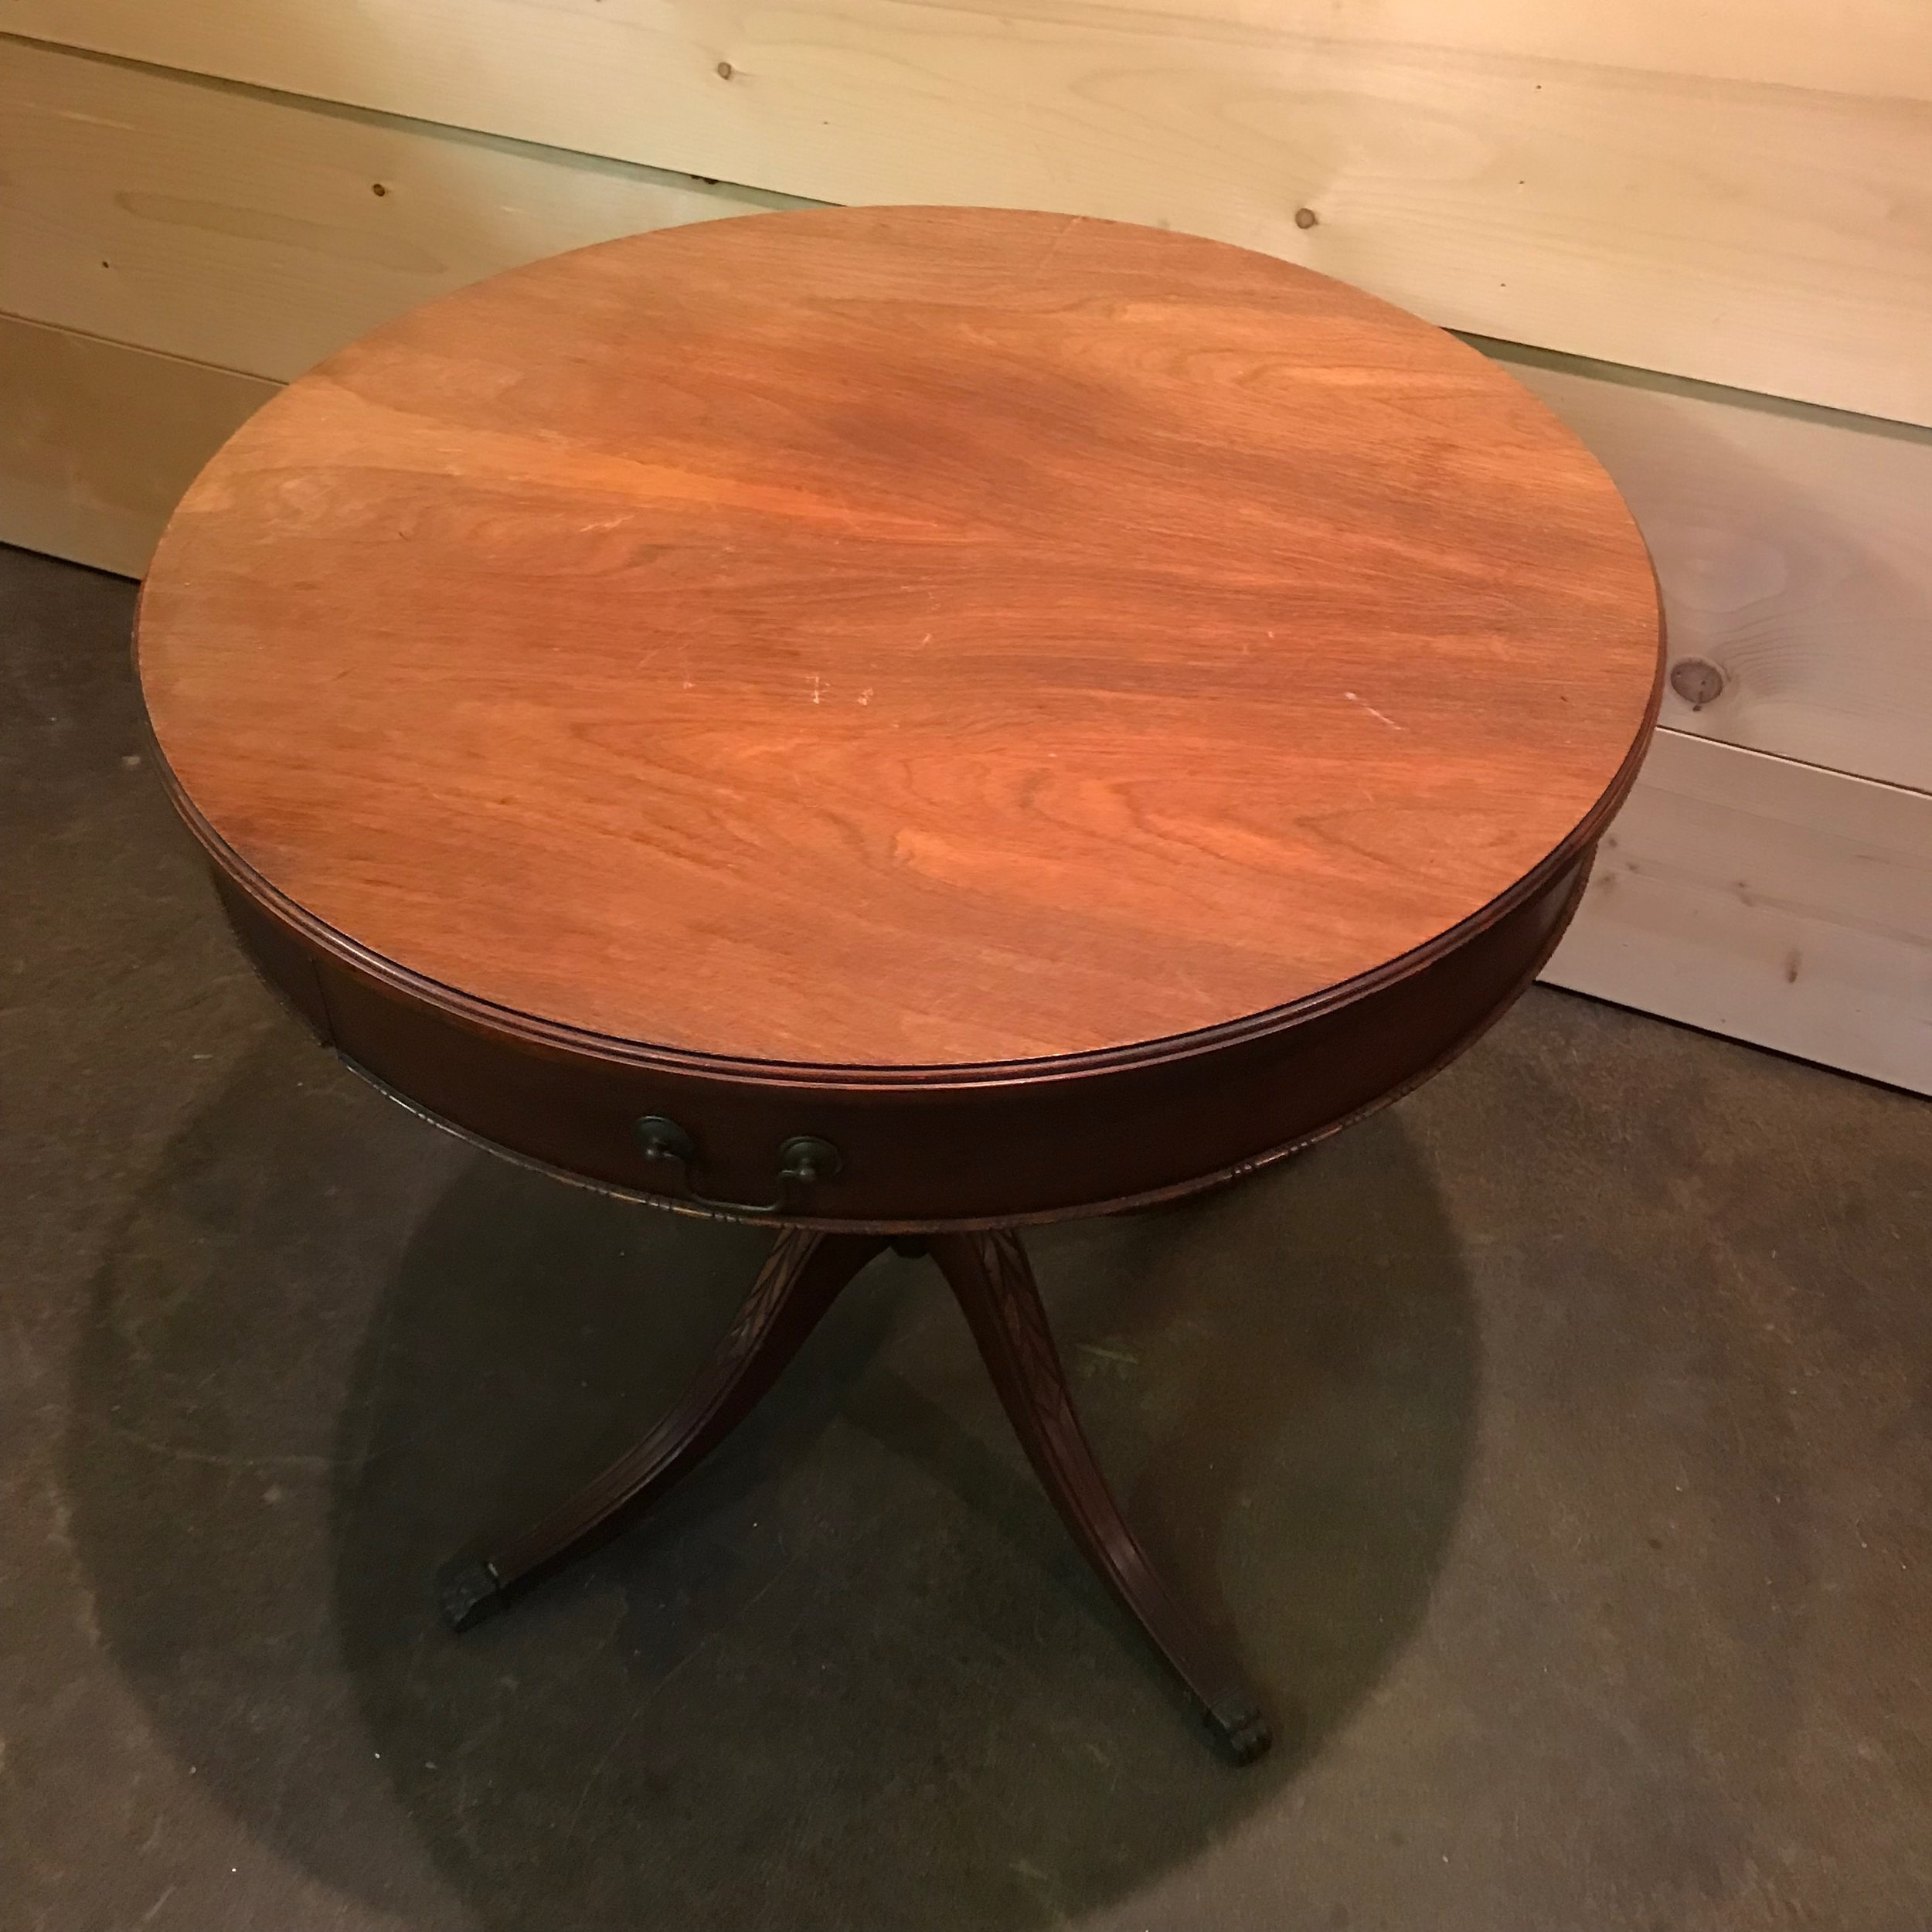 Vintage Mid Century Modern round side table with one drawer.